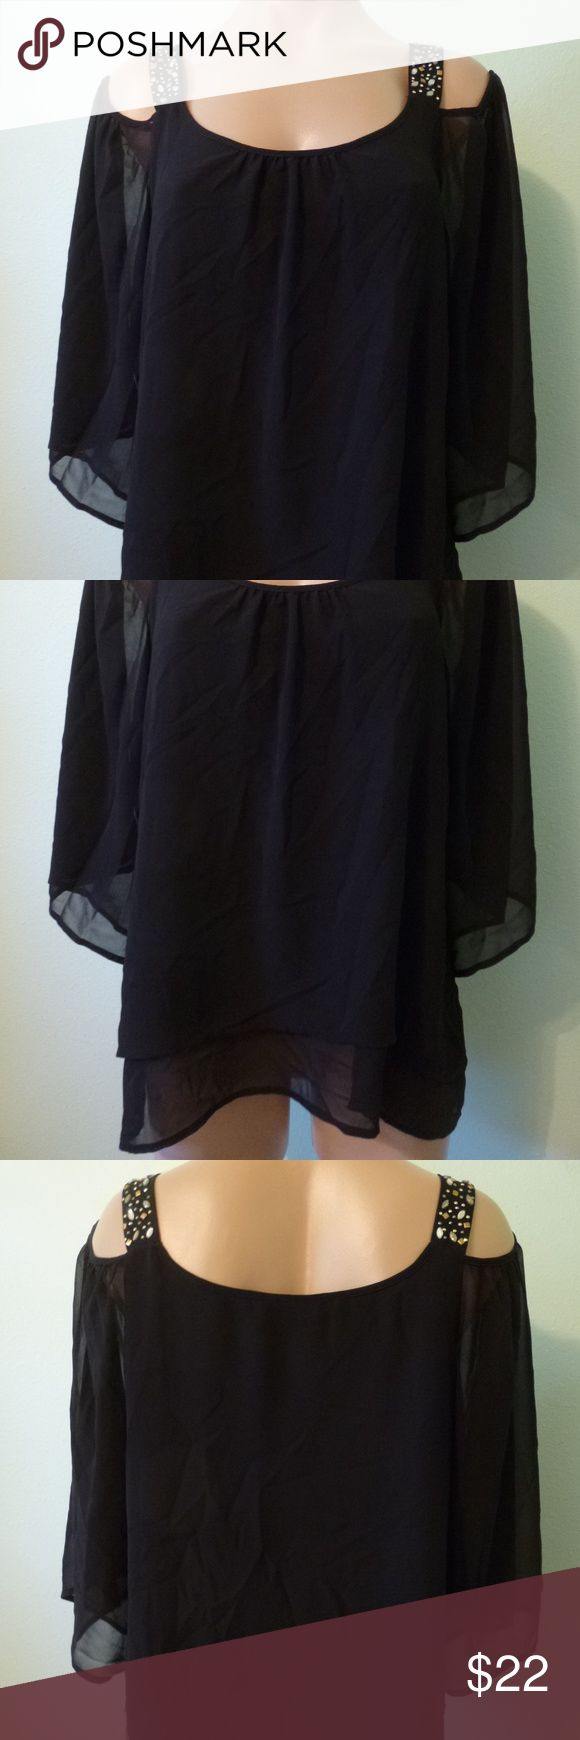 """Thalia Sodi Black Sheer Cold Shoulder Blouse M New Thalia Sodi black sheer crepe blouse over a black lining, size M. Gathered neck and beaded shoulder straps with an off shoulder sleeve. 100% polyester with a stretch poly lining.  Bust 38"""" - 42"""" lining stretched Waist 38"""" Length 25"""" Sleeve 14""""  Item will be shipped within one business day of cleared payment.  Comes from a non smoking home. Thalia Sodi Tops Blouses"""